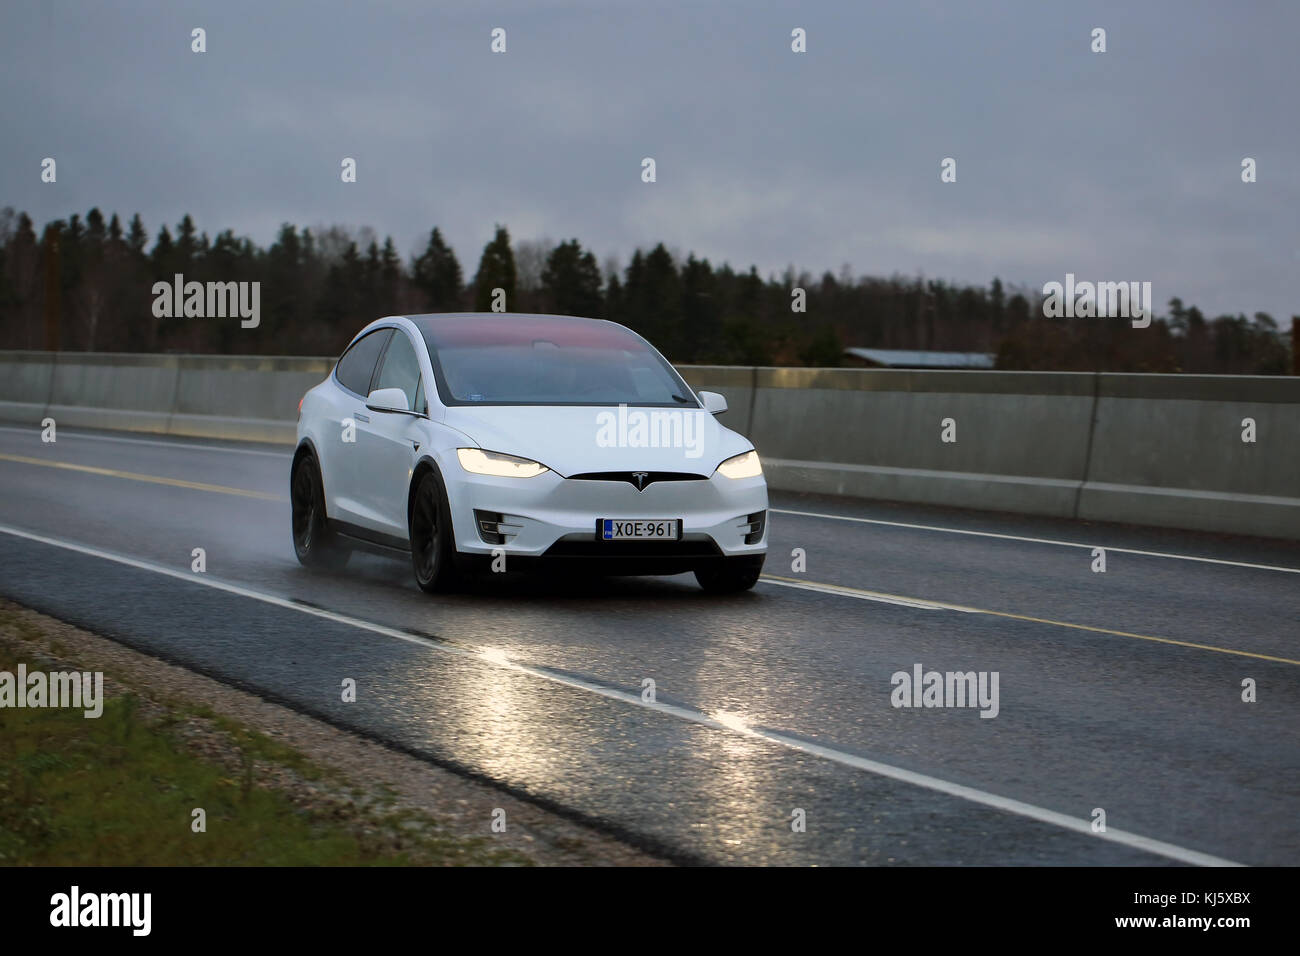 SALO, FINLAND - NOVEMBER 18, 2017: White Tesla Model X electric car moves along wet road in the evening. - Stock Image